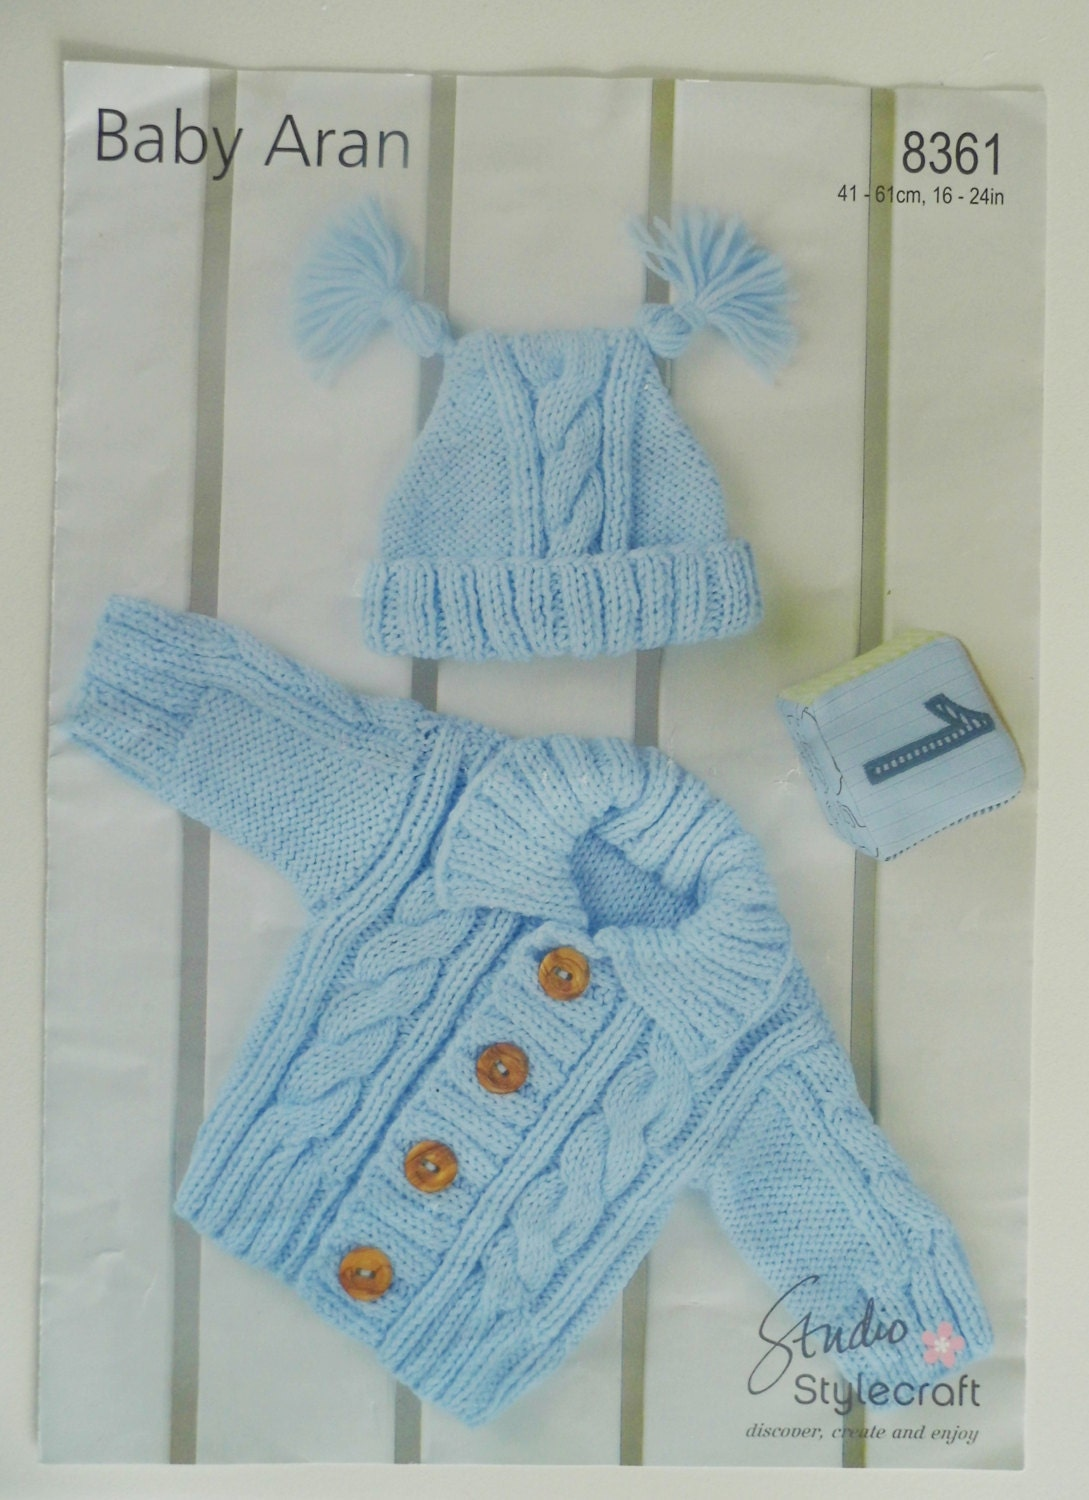 Free Knitting Pattern For Childs Aran Hat : Baby Aran Cardigan and Hat Knitting Pattern.0 4 years.